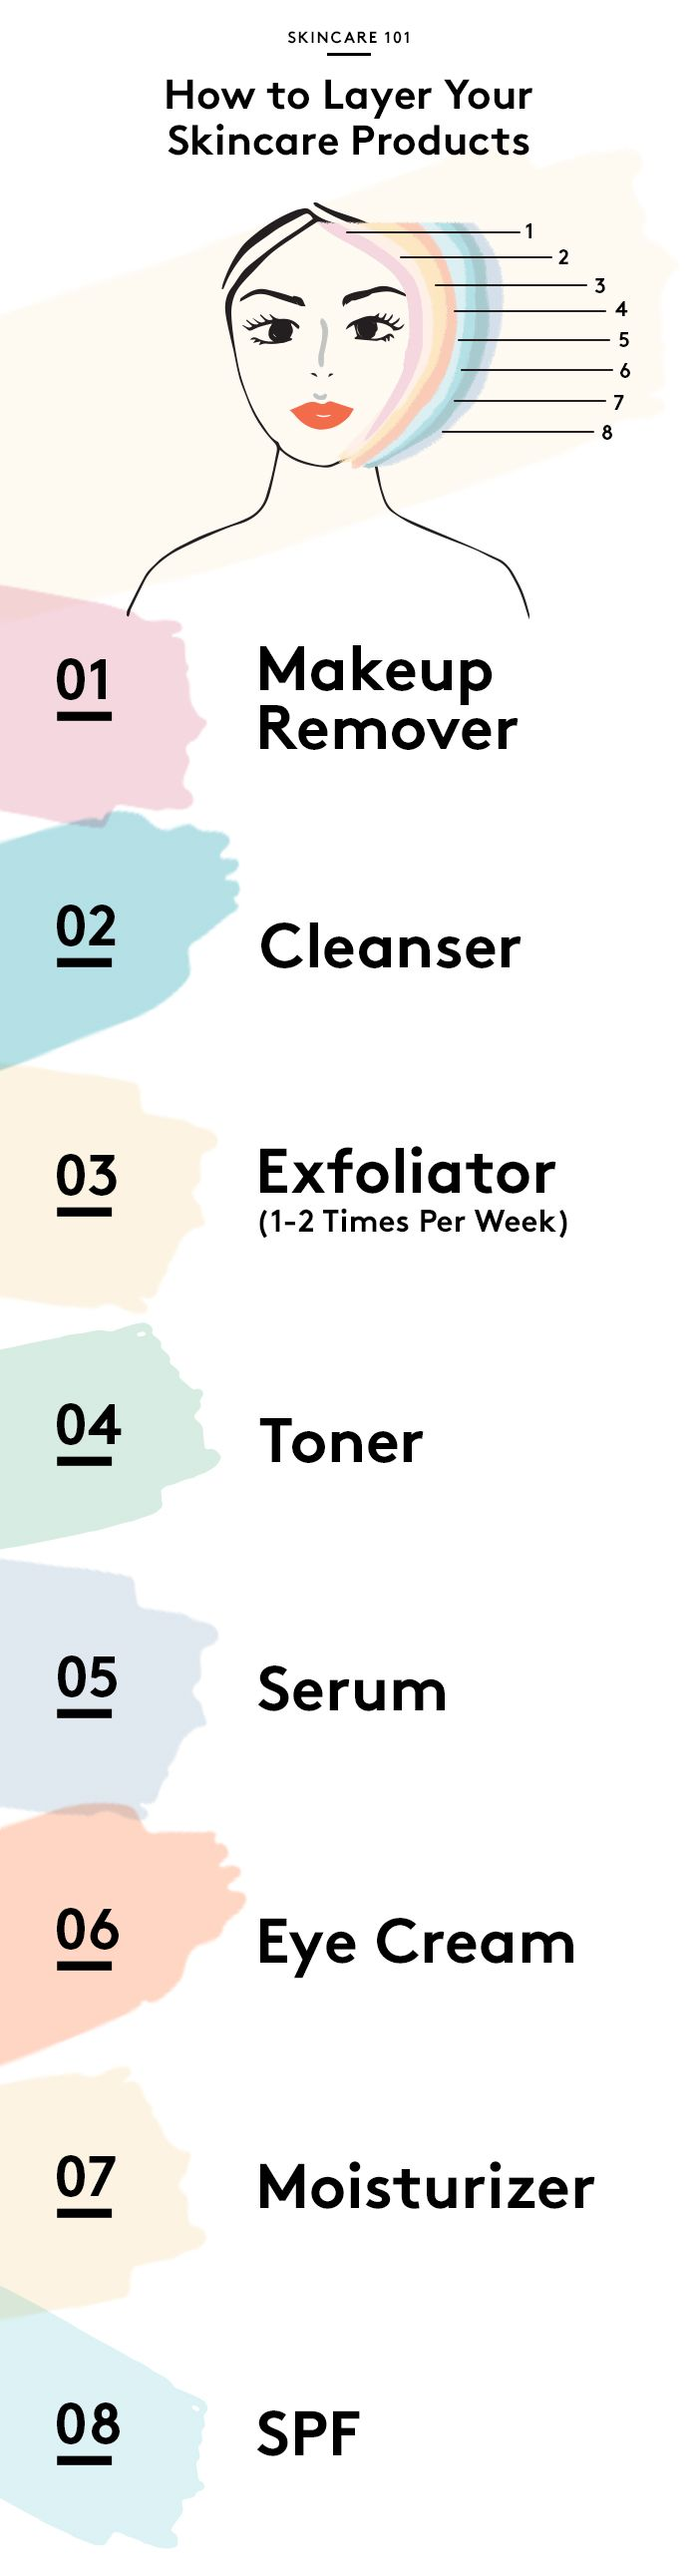 10 Step Skin Care Tutorial Skincare In Korea Is A Somewhat Exhaustive Multi Step Process A Fact That S Skin Care Tutorial Korean 10 Step Skin Care Skin Care